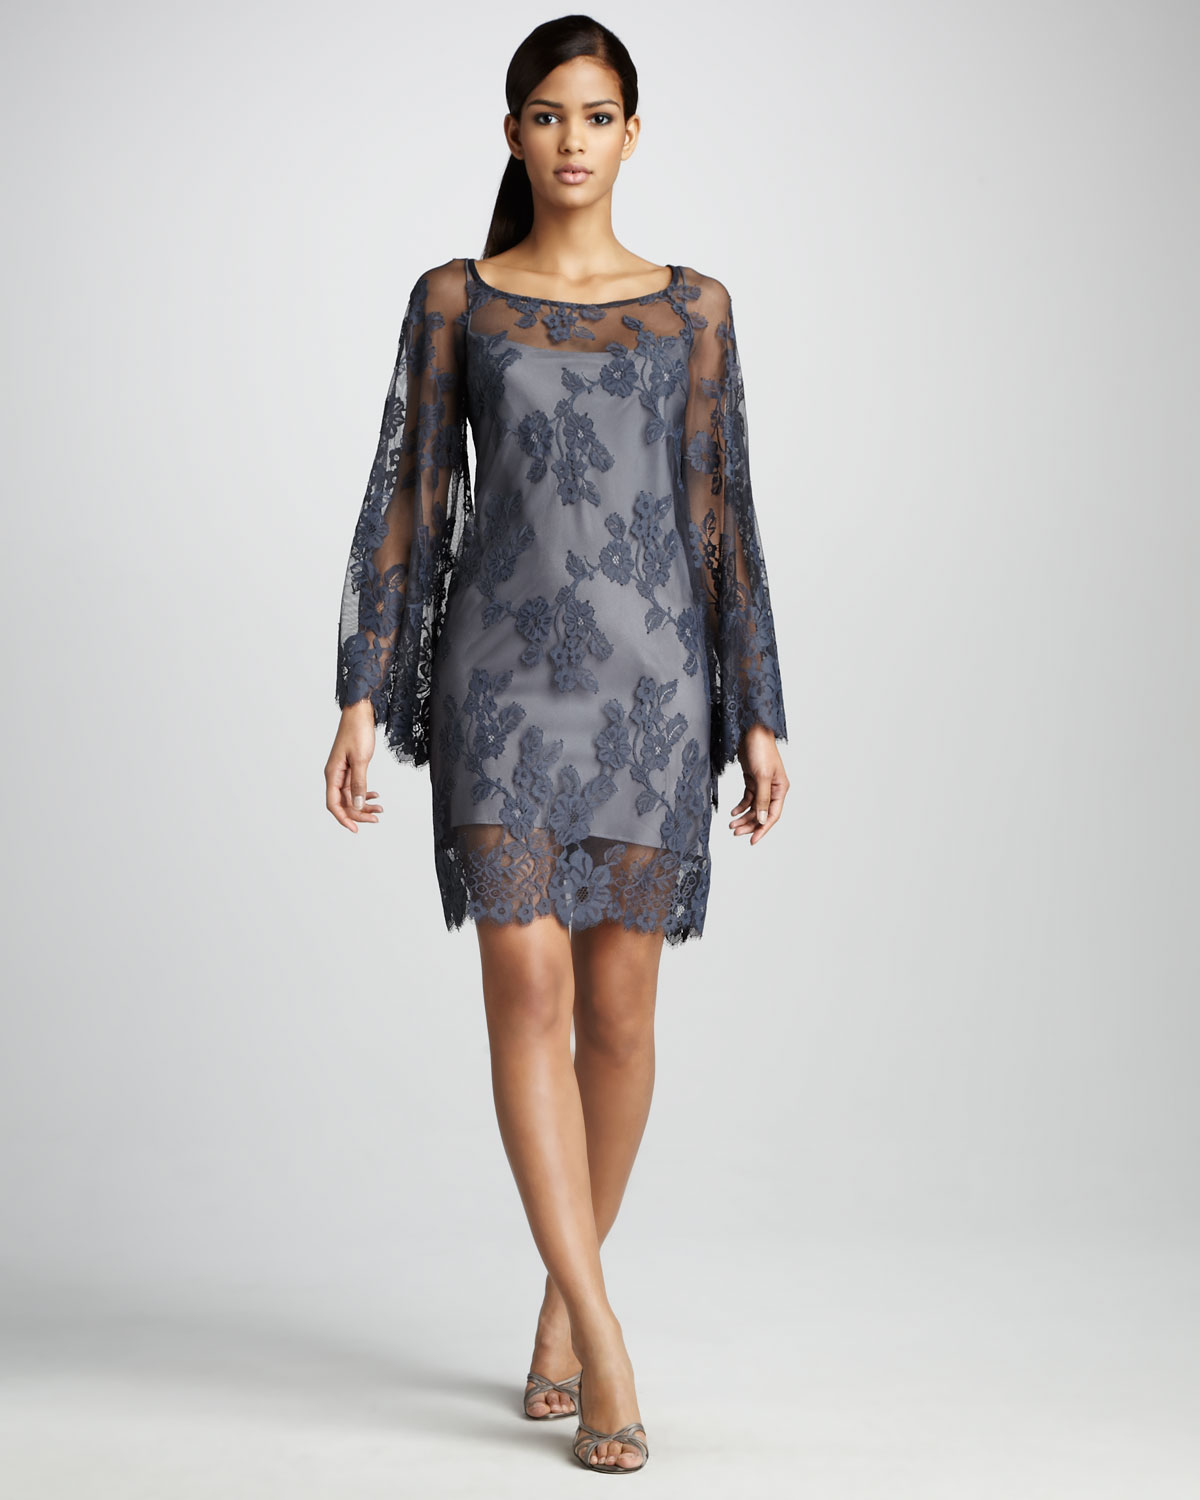 Nicole Miller Evening Dress